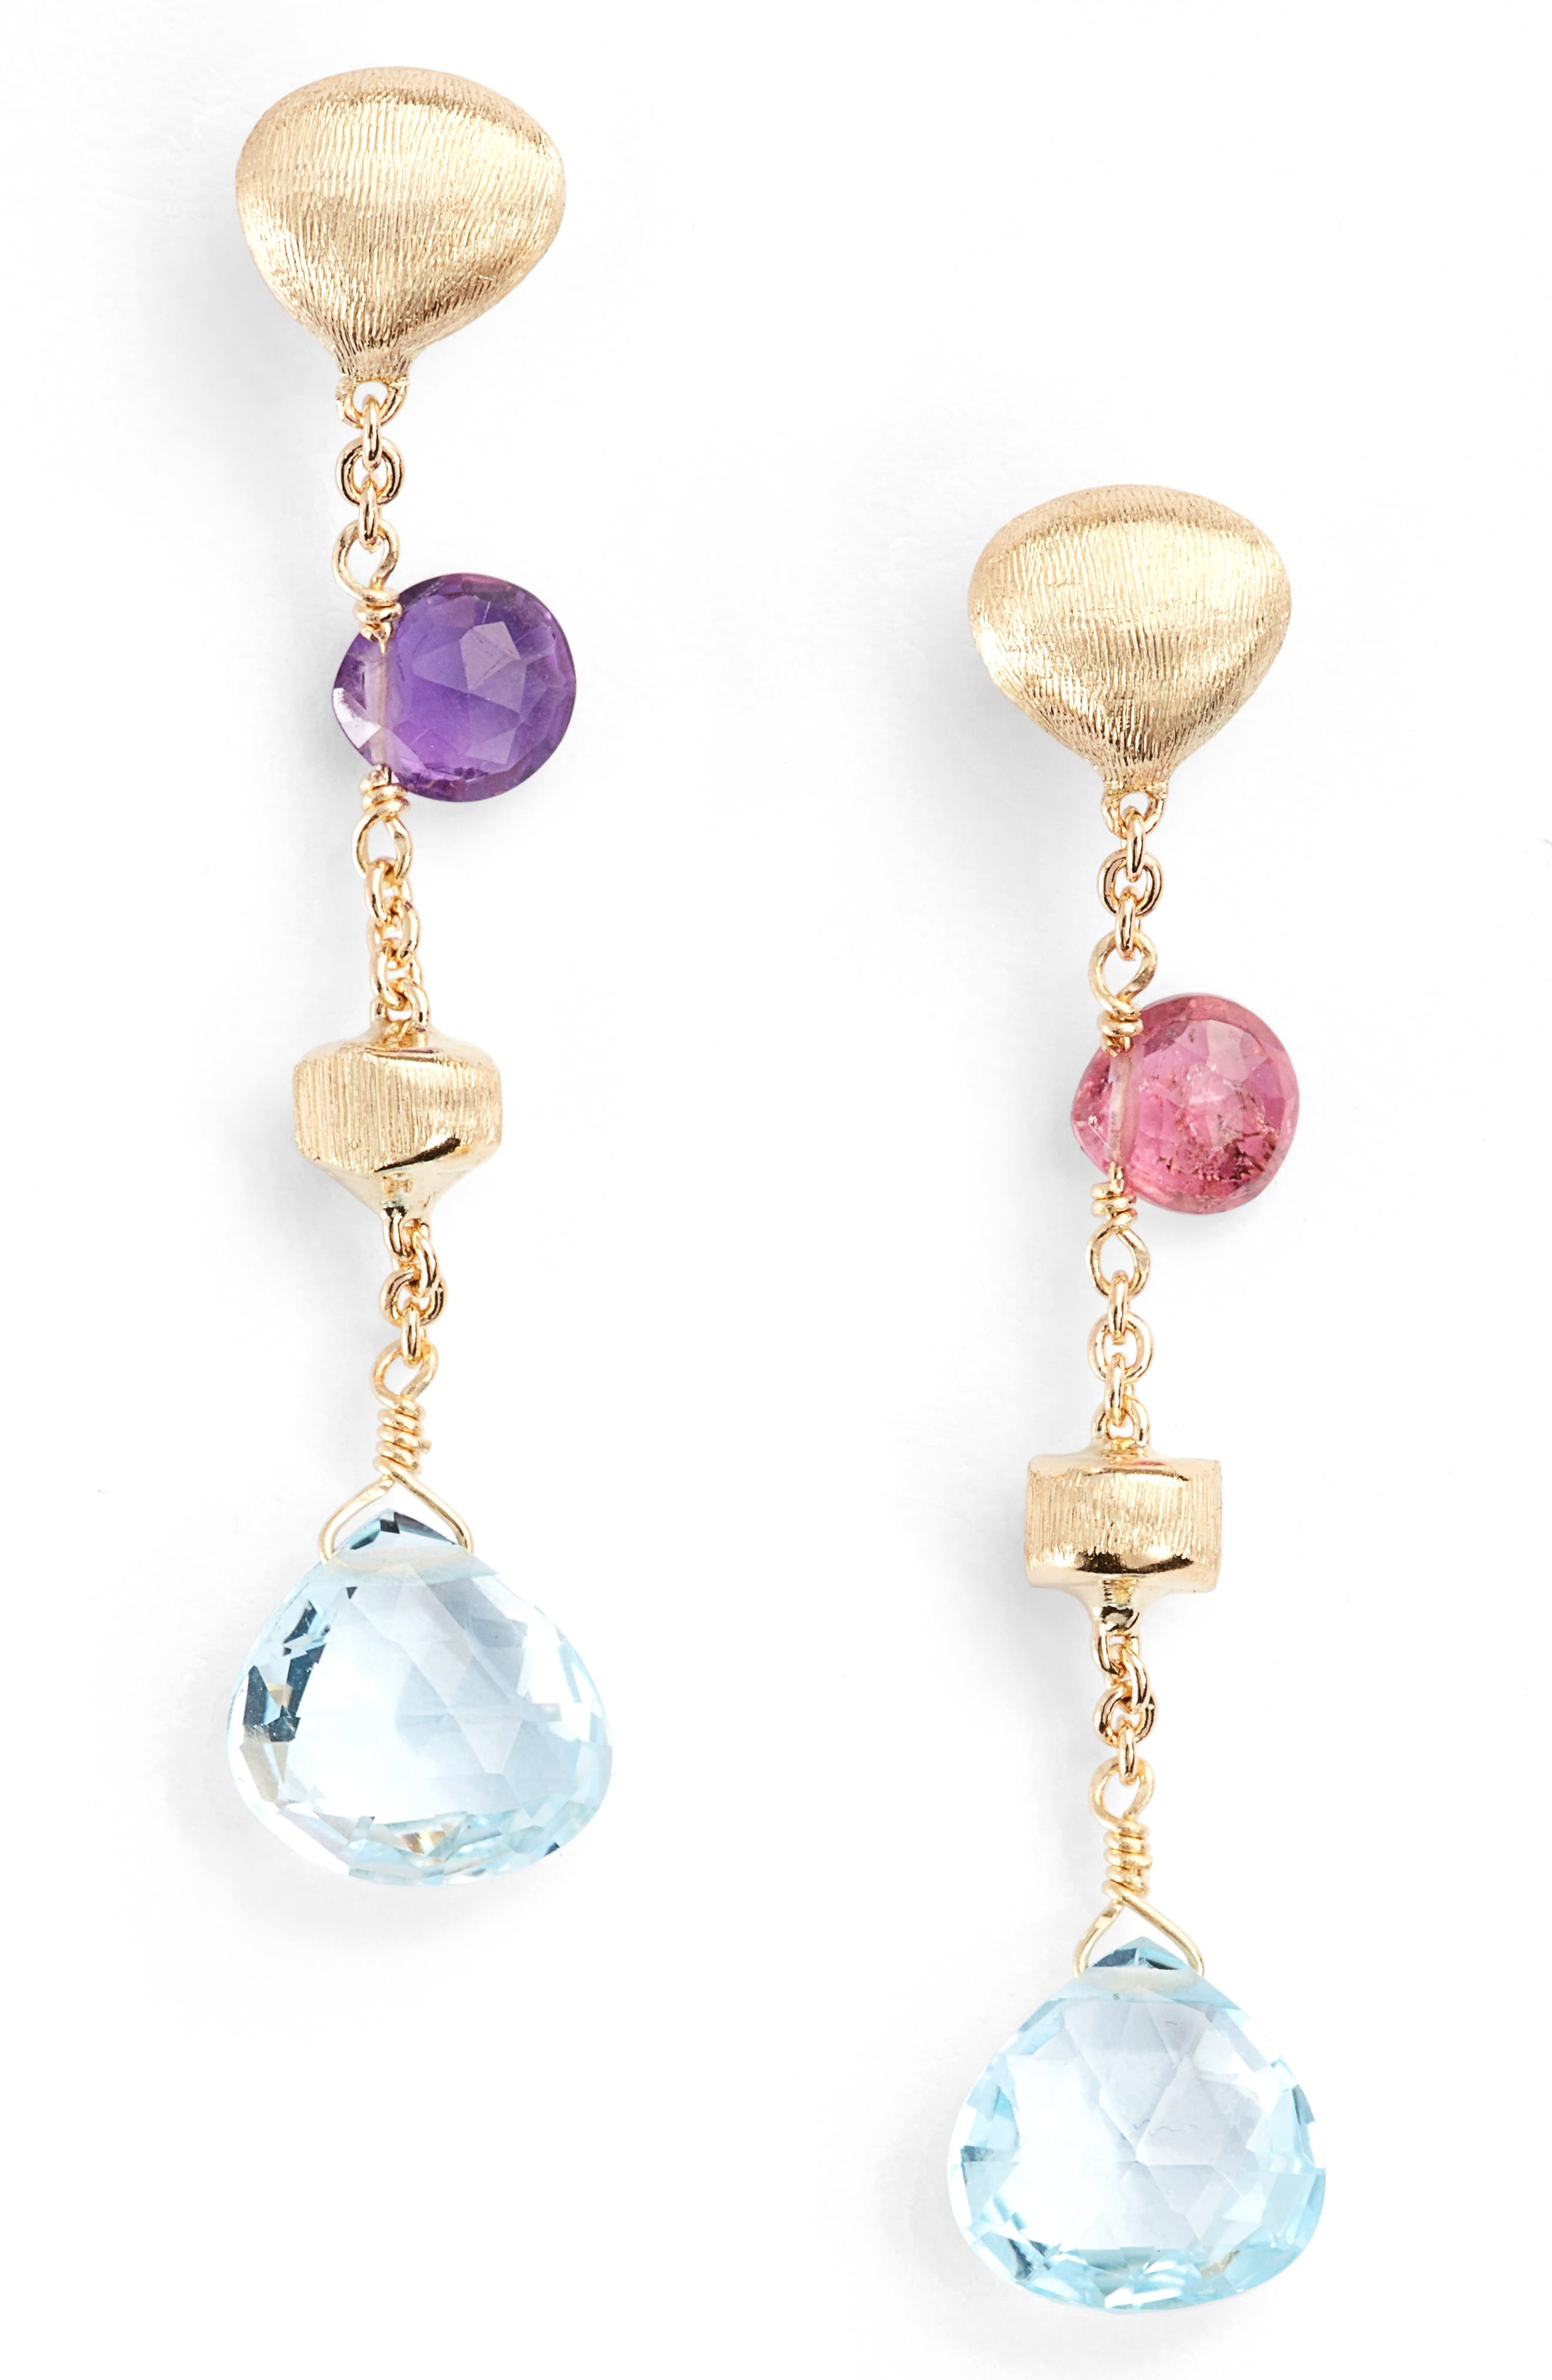 Paradise Semiprecious Stone Drop Earrings,                             Main thumbnail 1, color,                             Yellow Gold